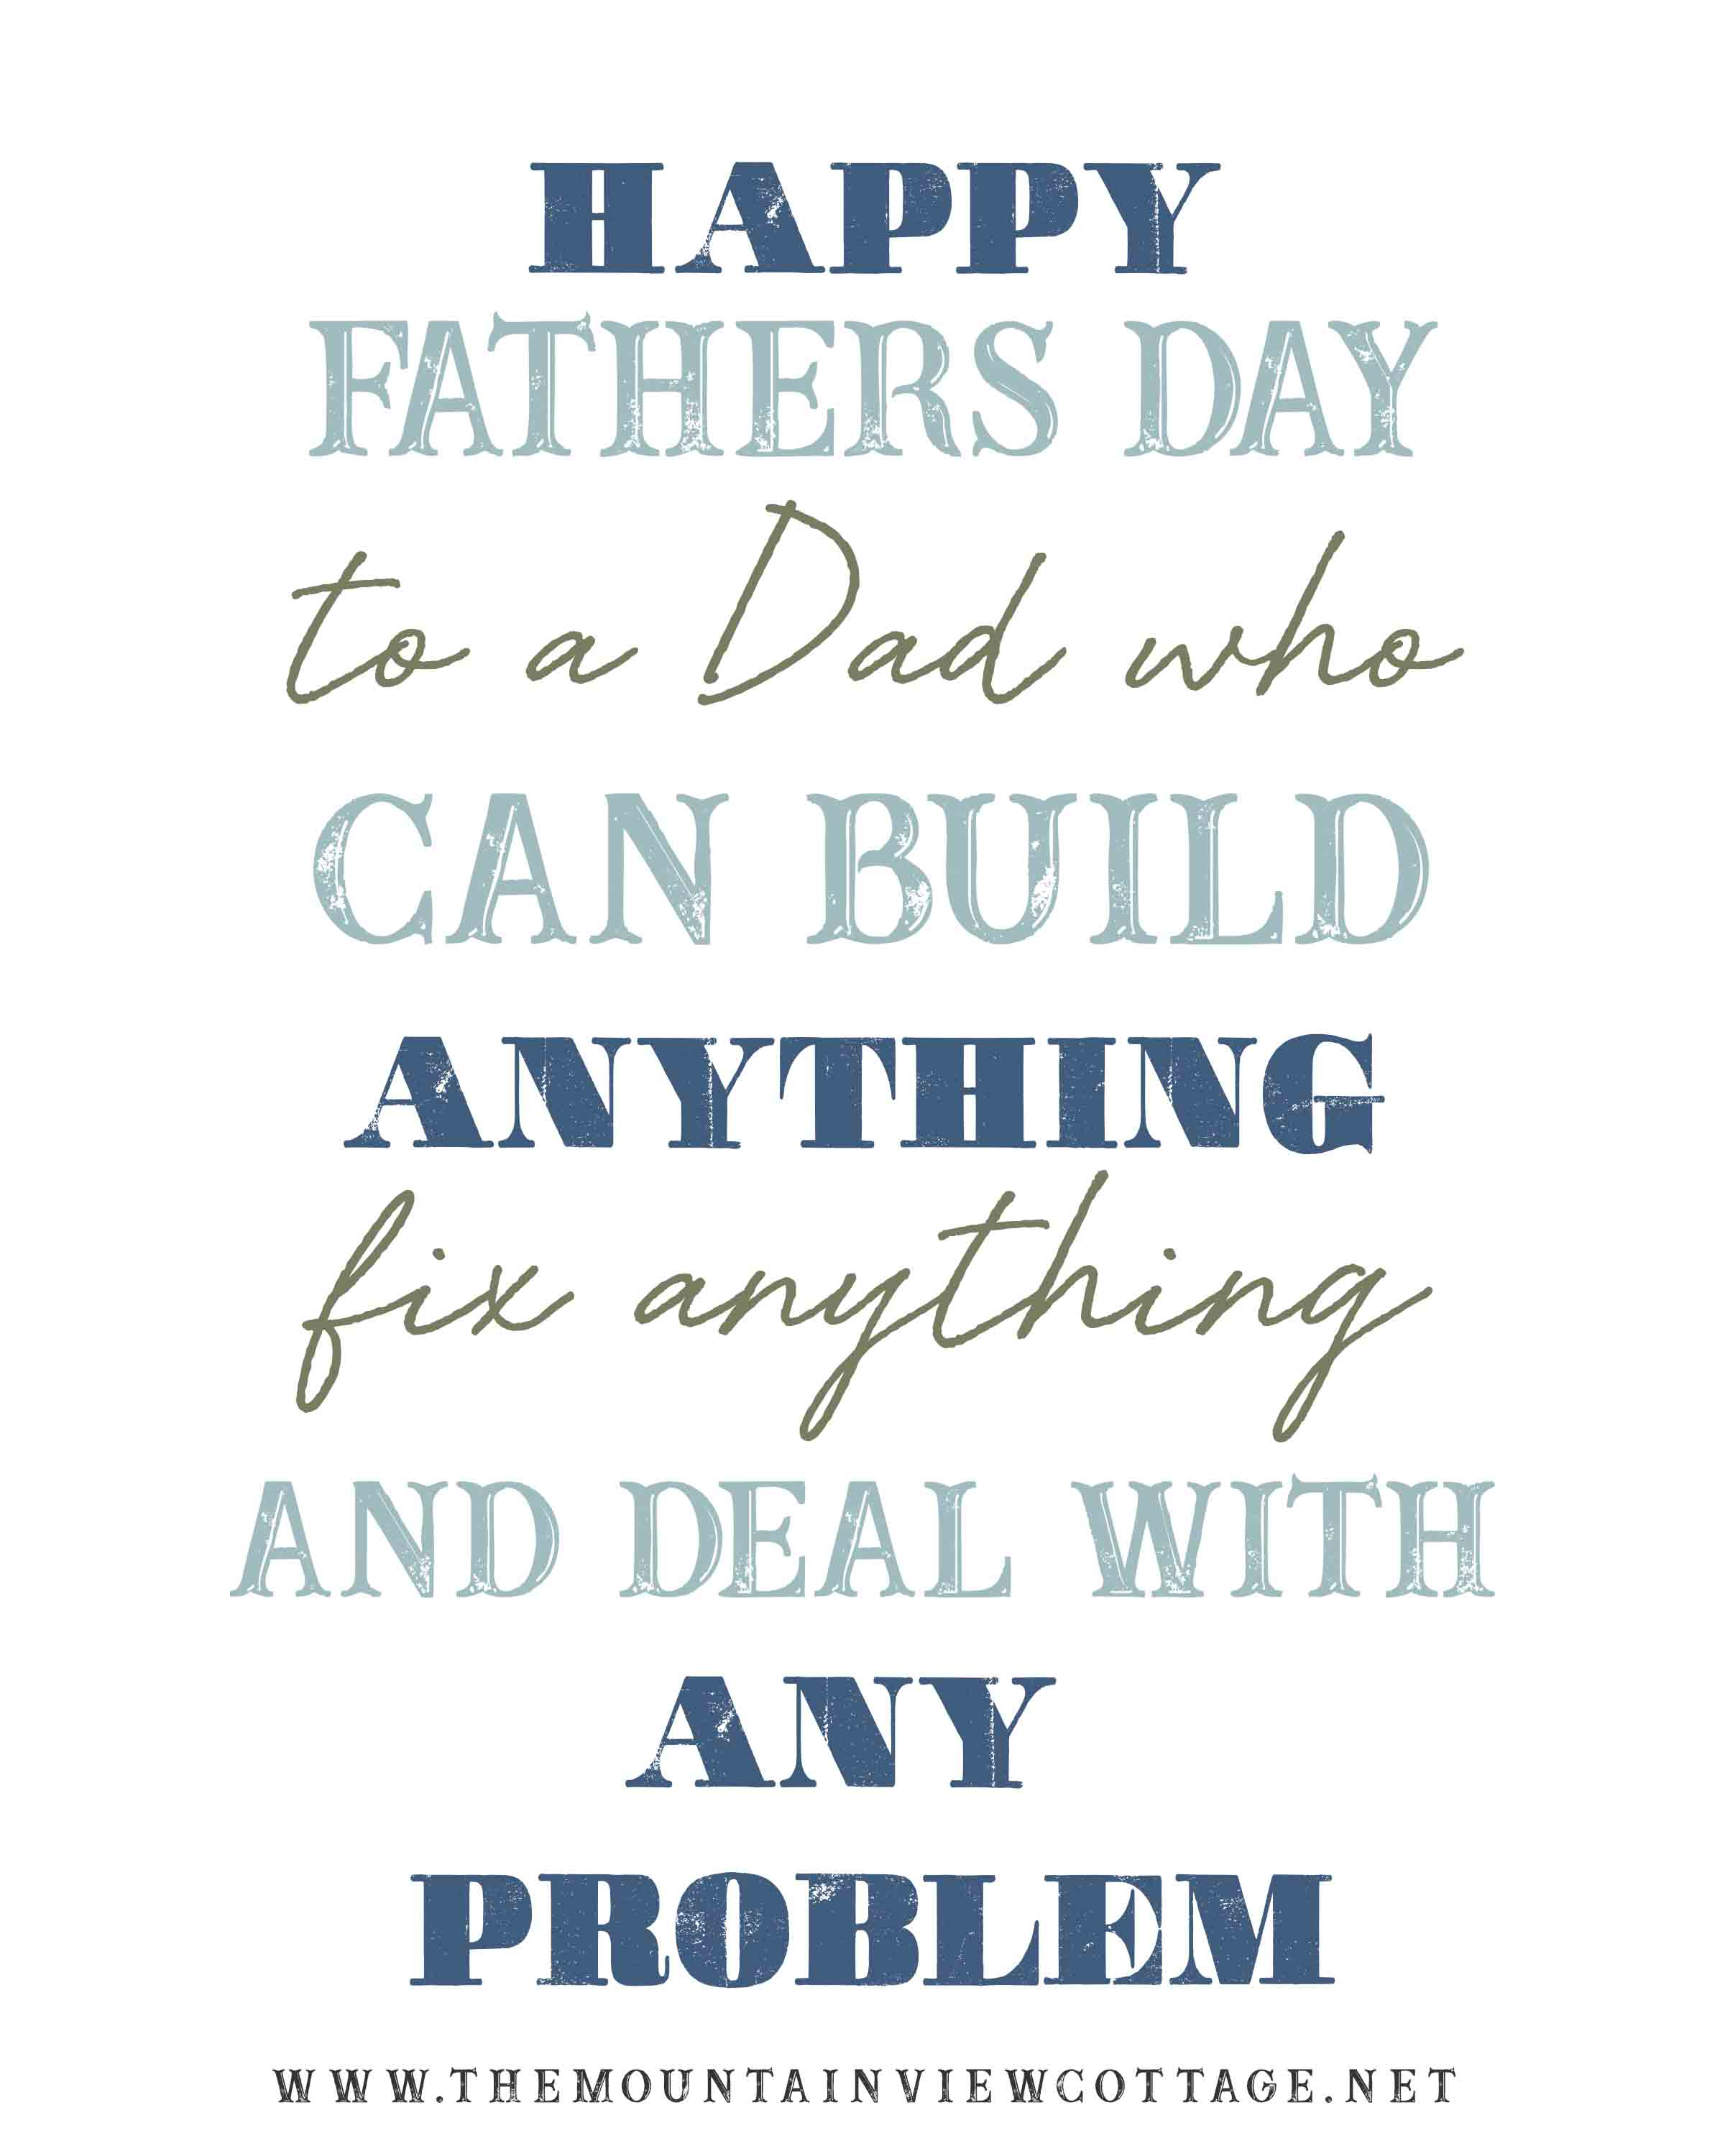 25 Dad Quotes To Inspire {With Images}